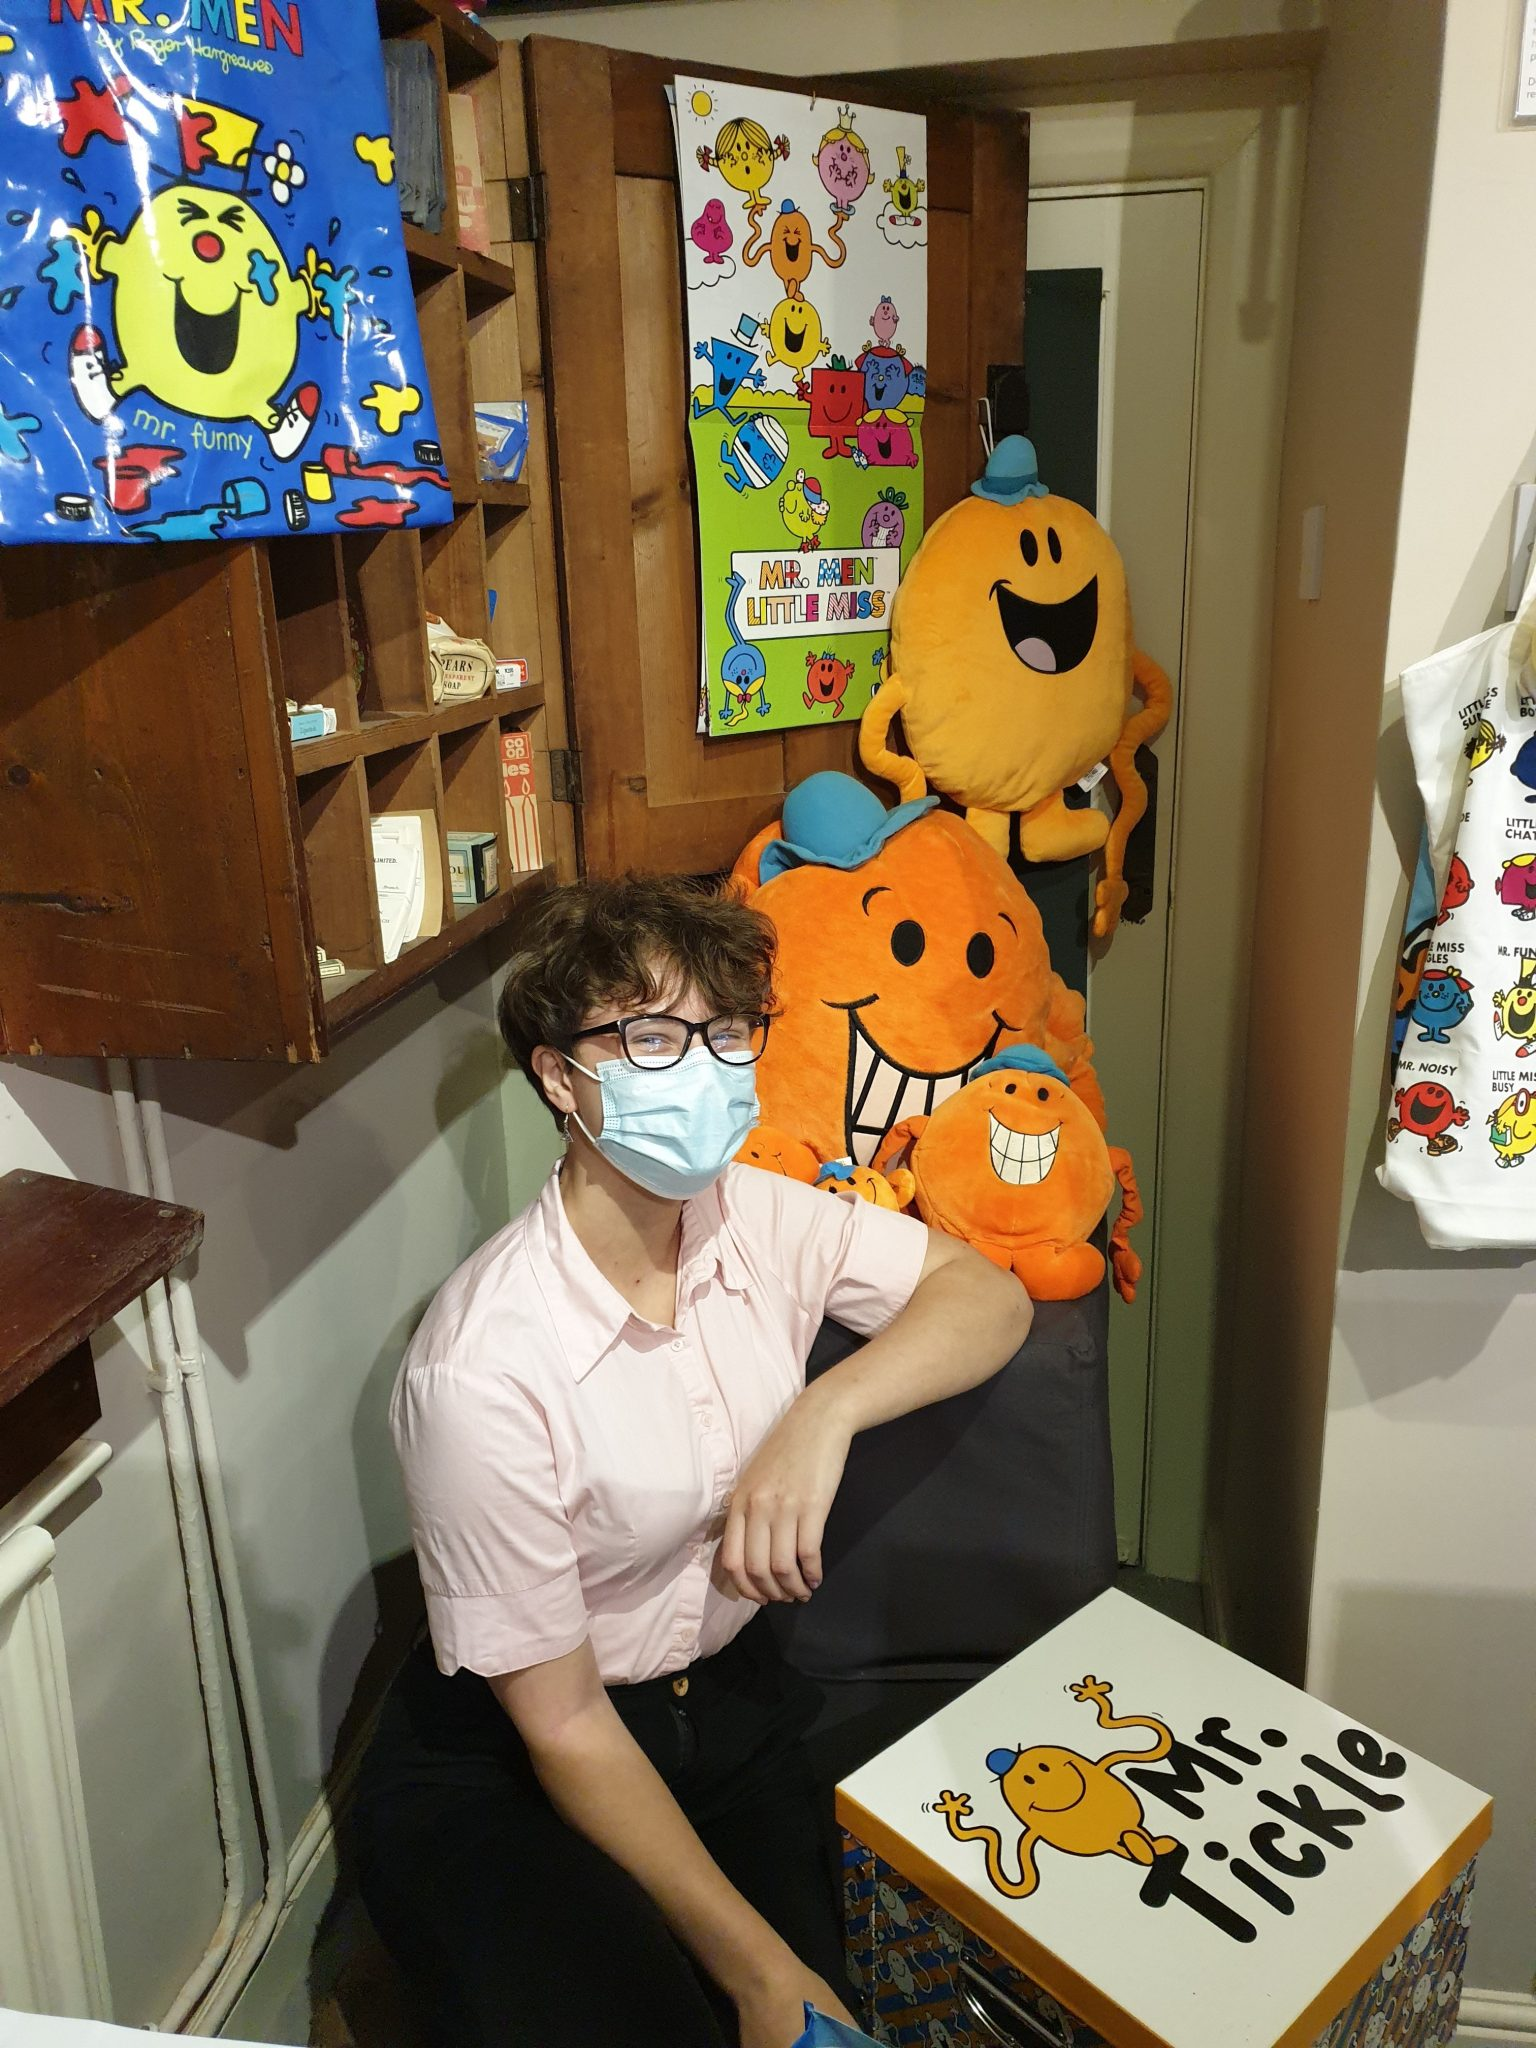 Photo of a person with lots of Mr Men soft toys and posters.